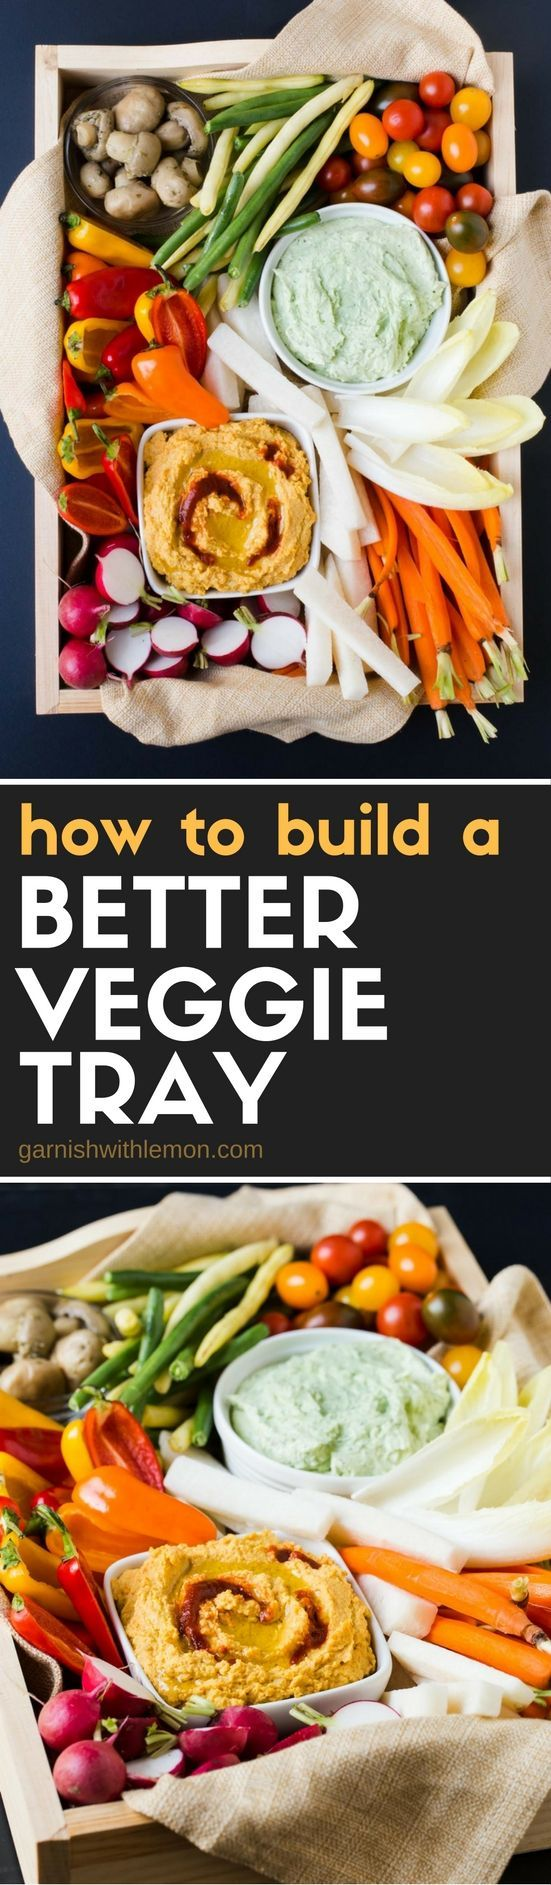 Don't miss our 6 simple suggestions for How to Build a Better Veggie Tray that will wow your guests at your next party!                                                                                                                                                                                 More